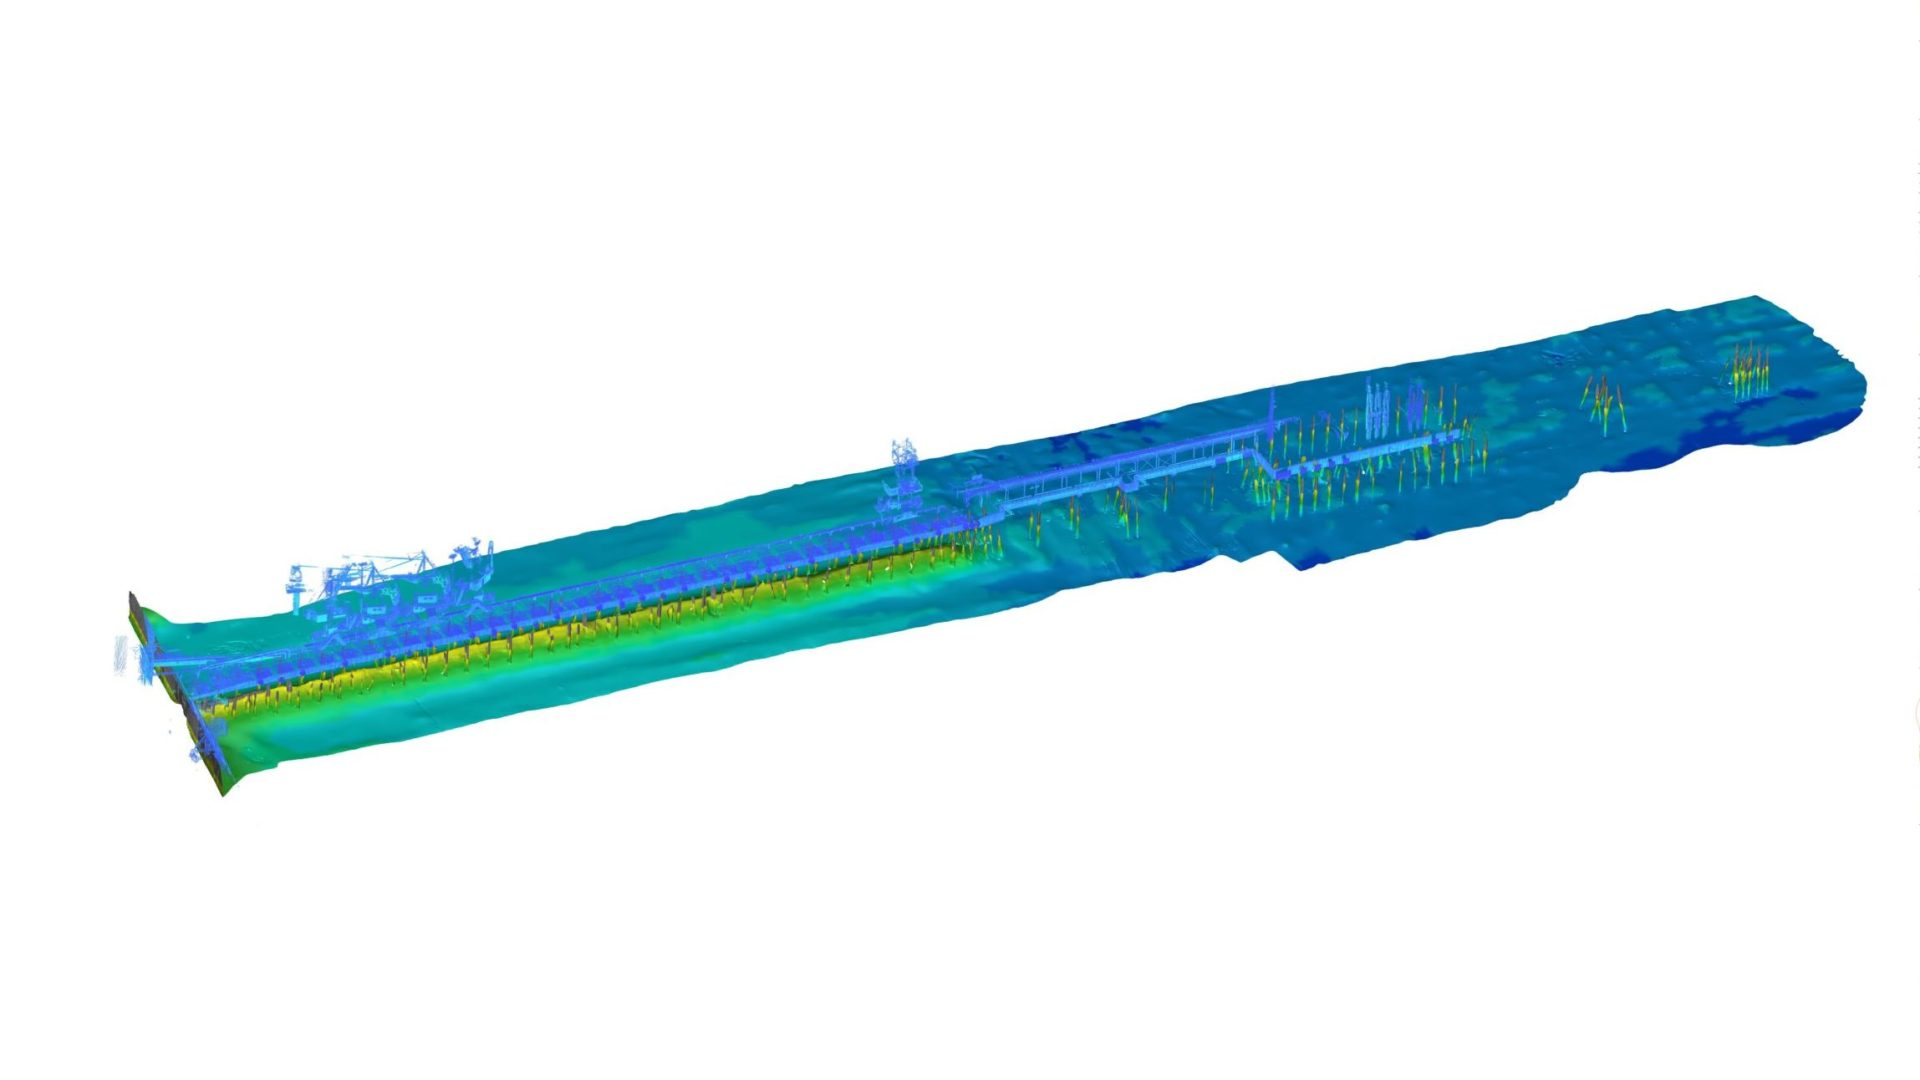 Combined MBES and LIDAR scan of piers 9,9A,10,10A of port Muuga